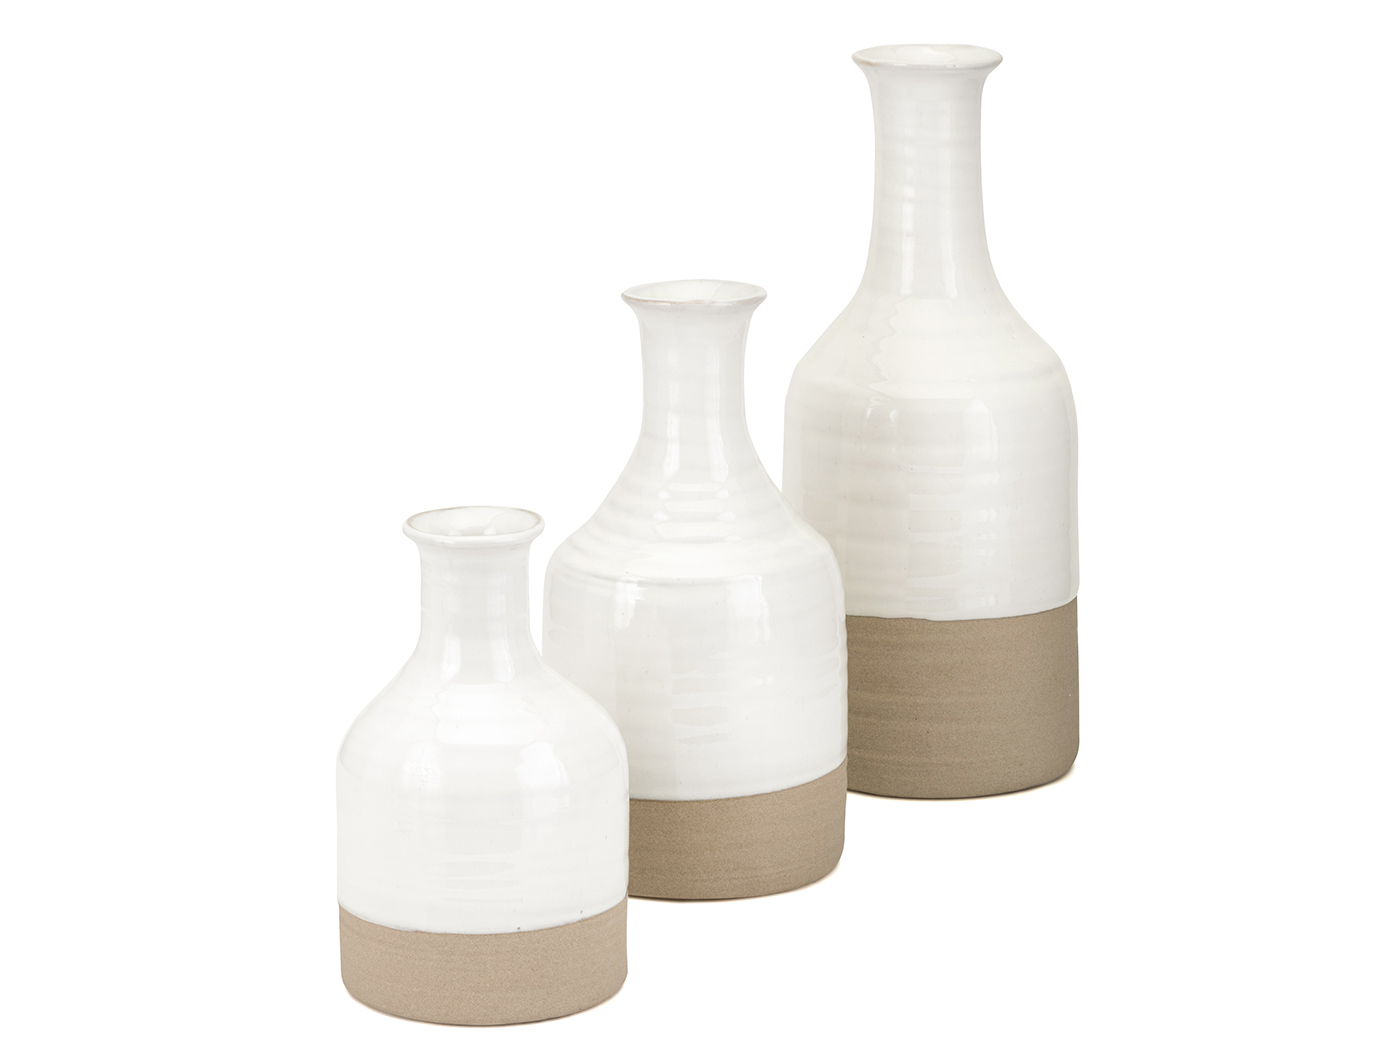 "Set of 3 Ivory and Camel Ceramic Vases 4.75-5-5.5""W x 8-10.5-14""H"